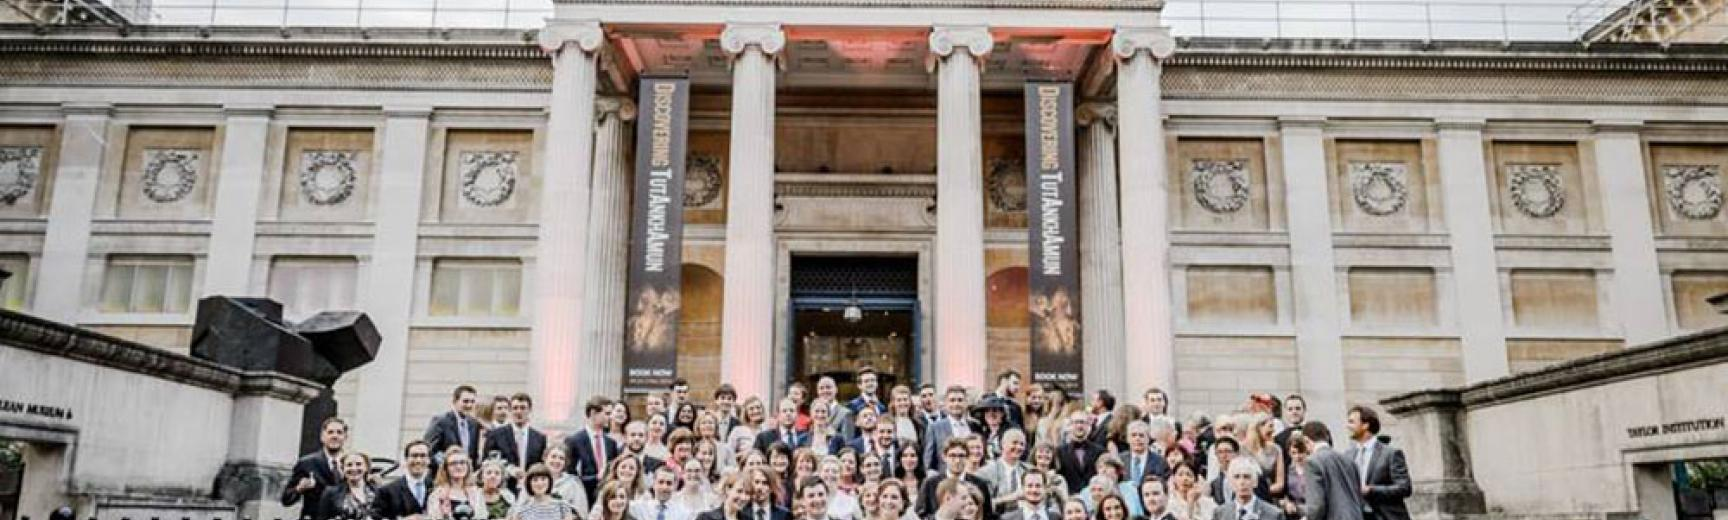 venue hire weddings at the ashmolean museum